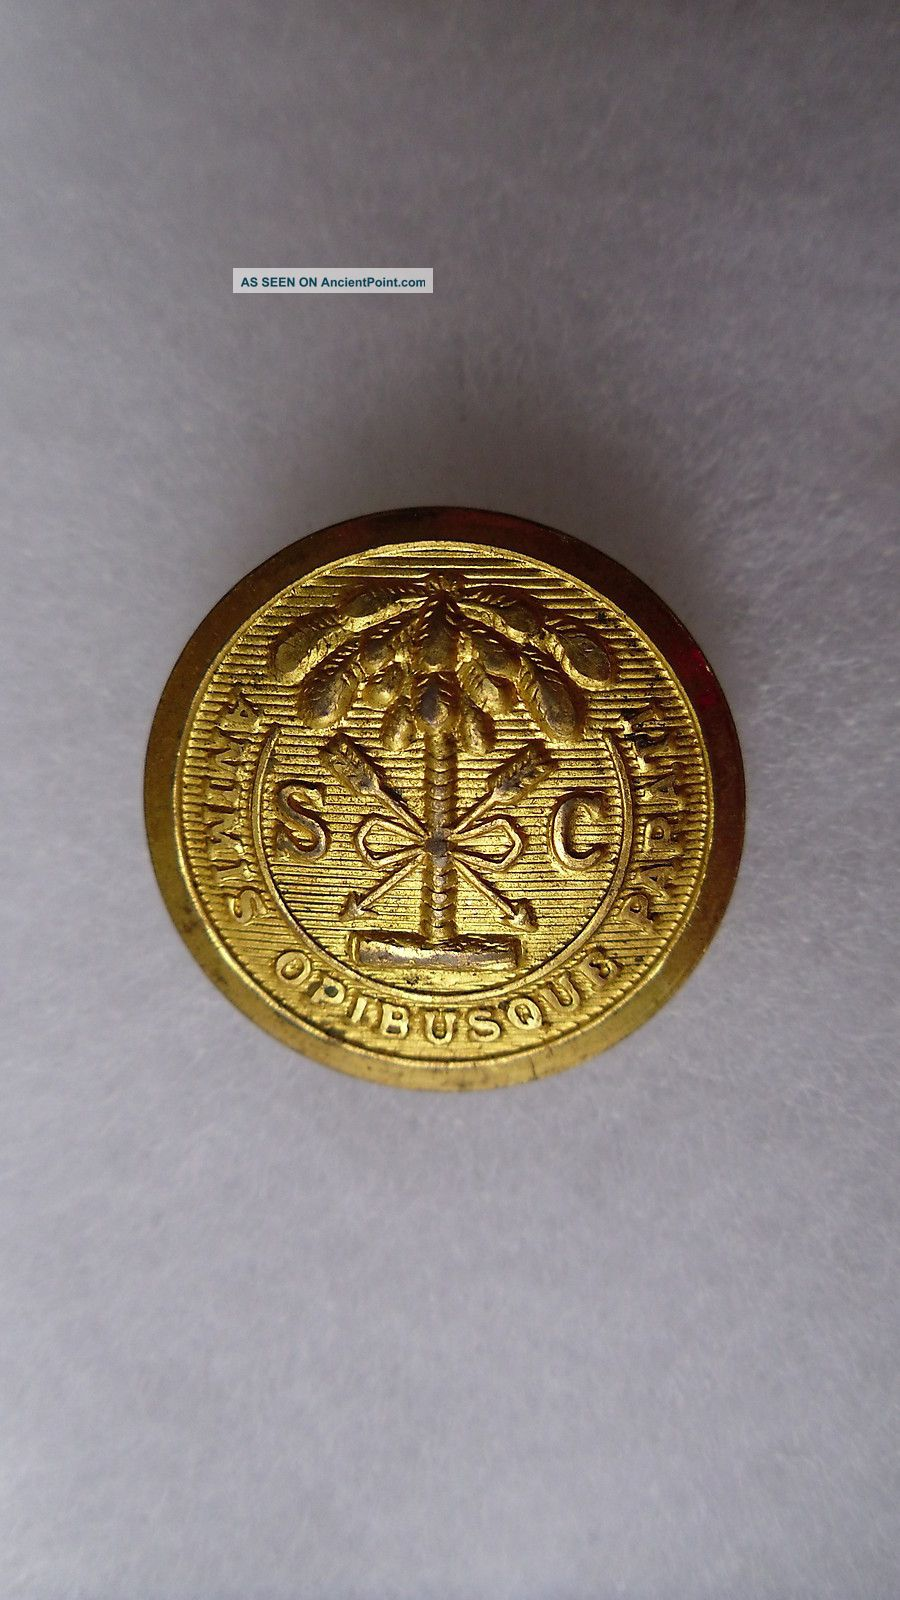 Antique South Carolina State Seal Coat Button Jacob Reeds Sons Norristown 23 Mm Buttons photo